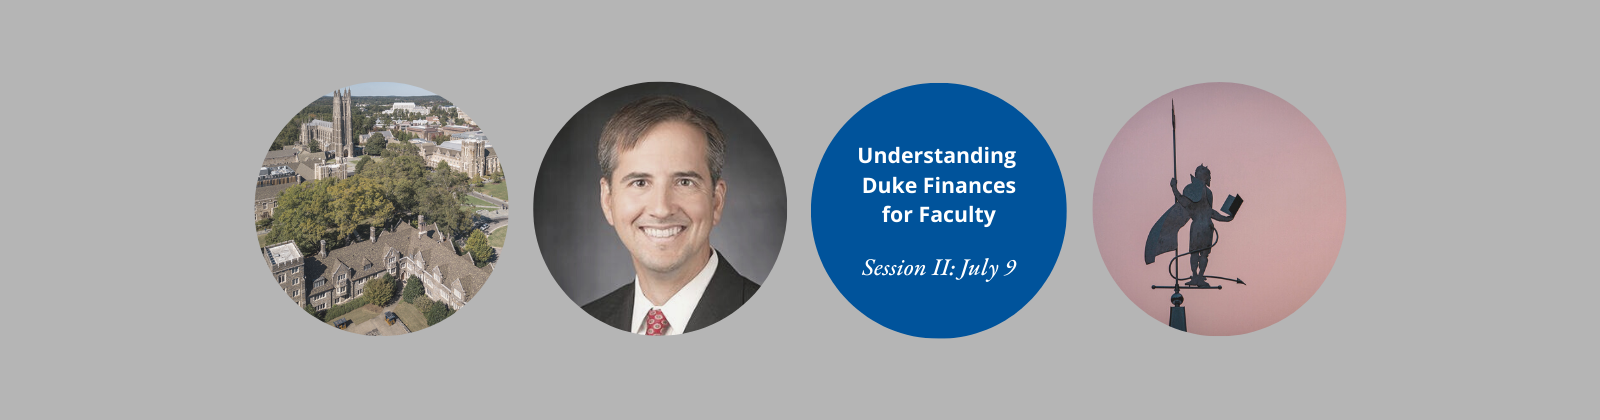 Understanding Duke Finances for Faculty, with Tim Walsh, July 9